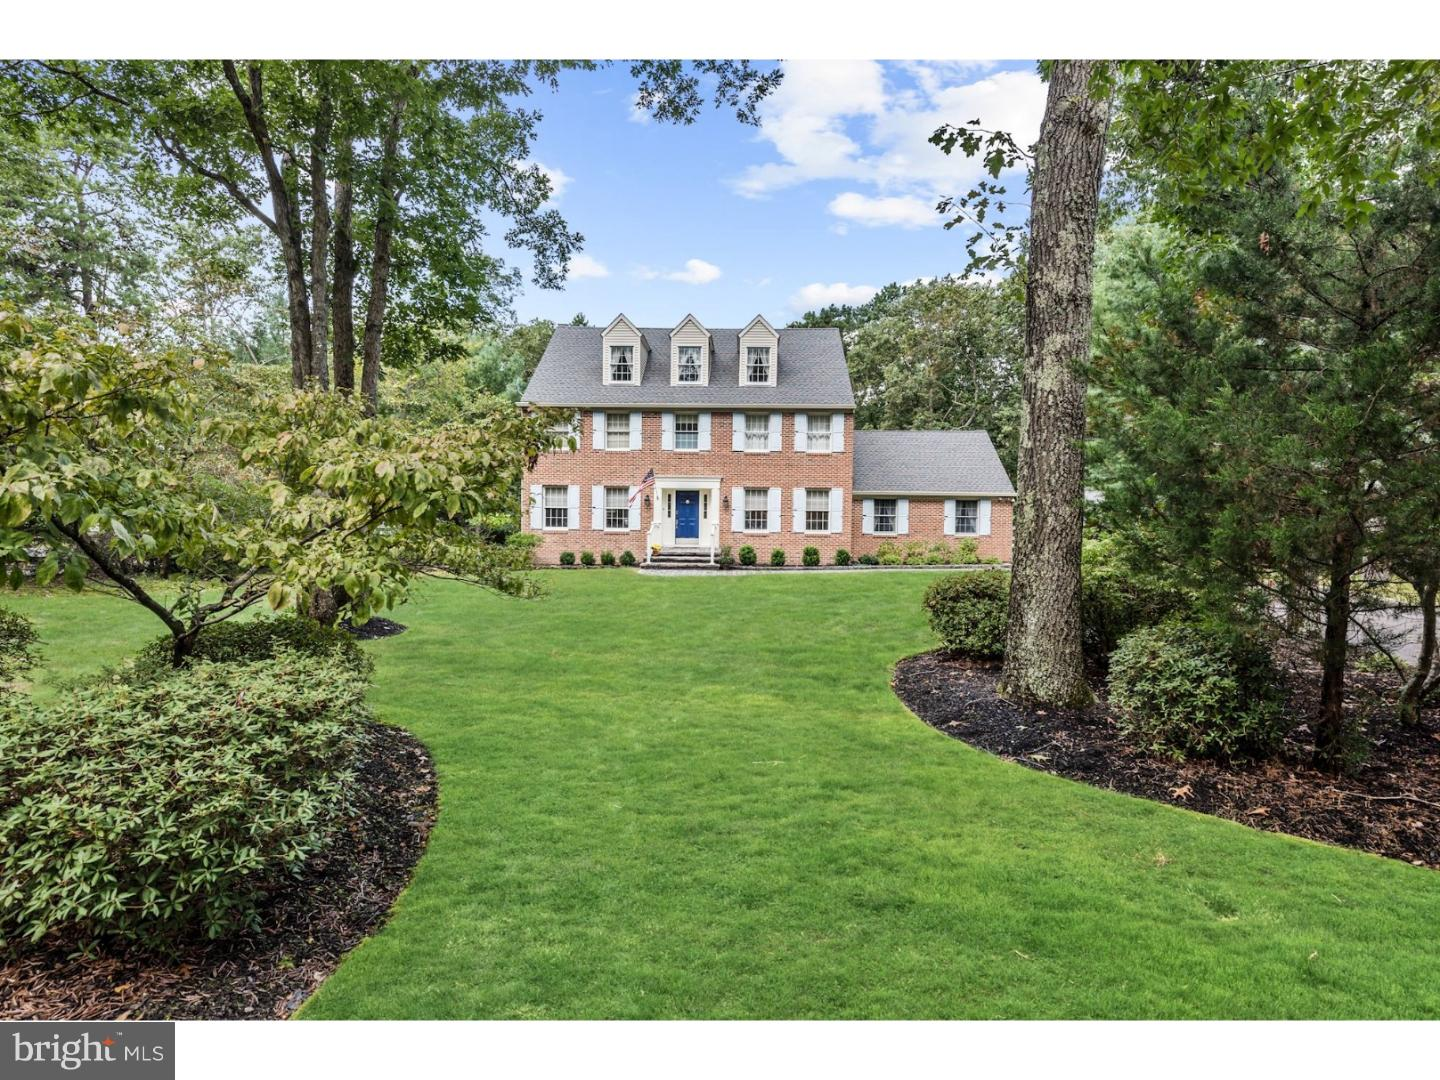 Single Family Home for Sale at 11 LEXINGTON Court Shamong, New Jersey 08088 United States